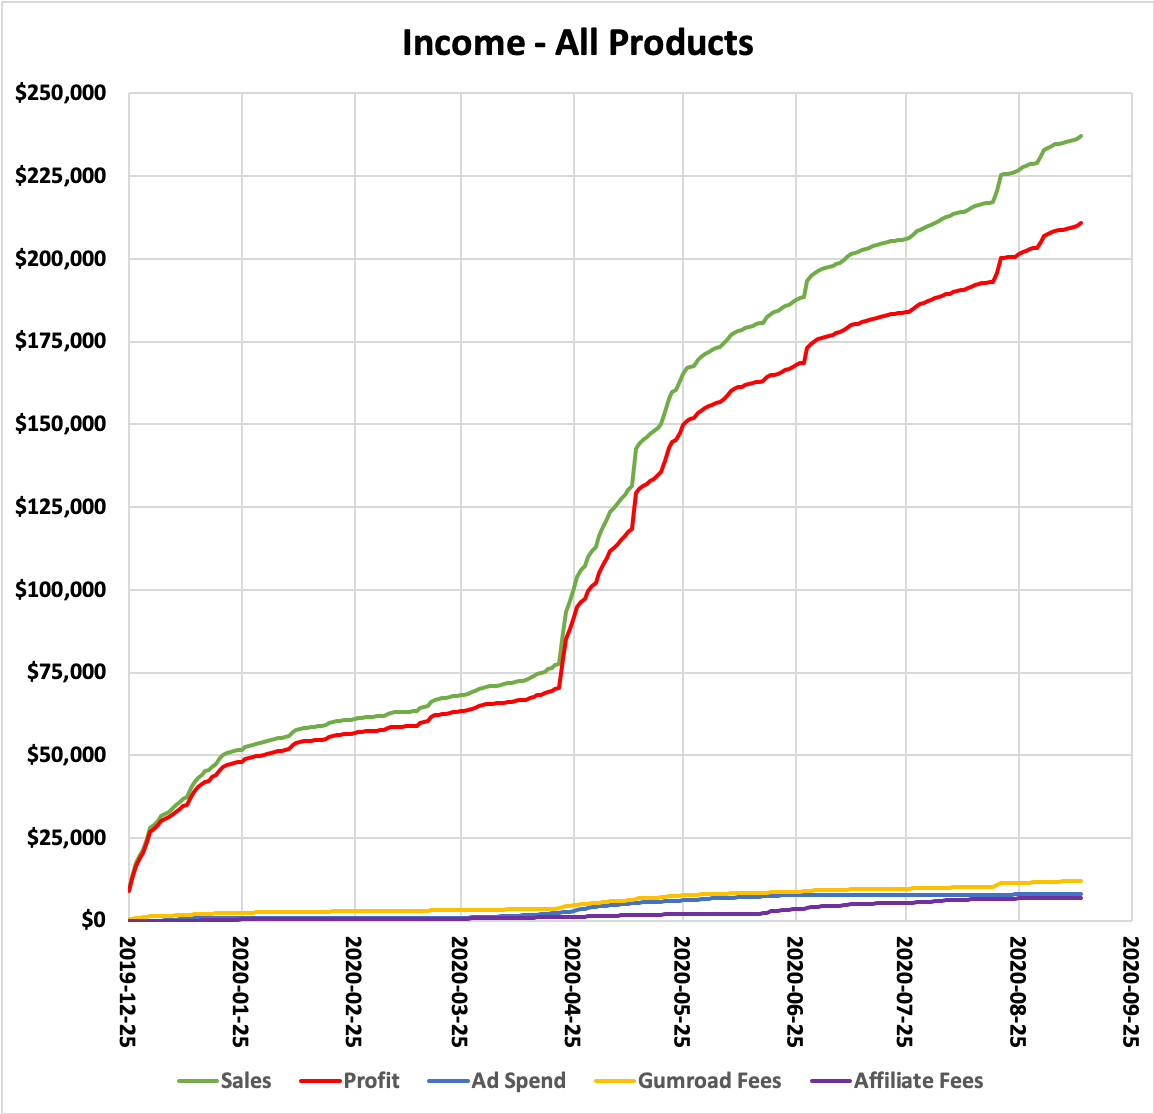 Income - All Products